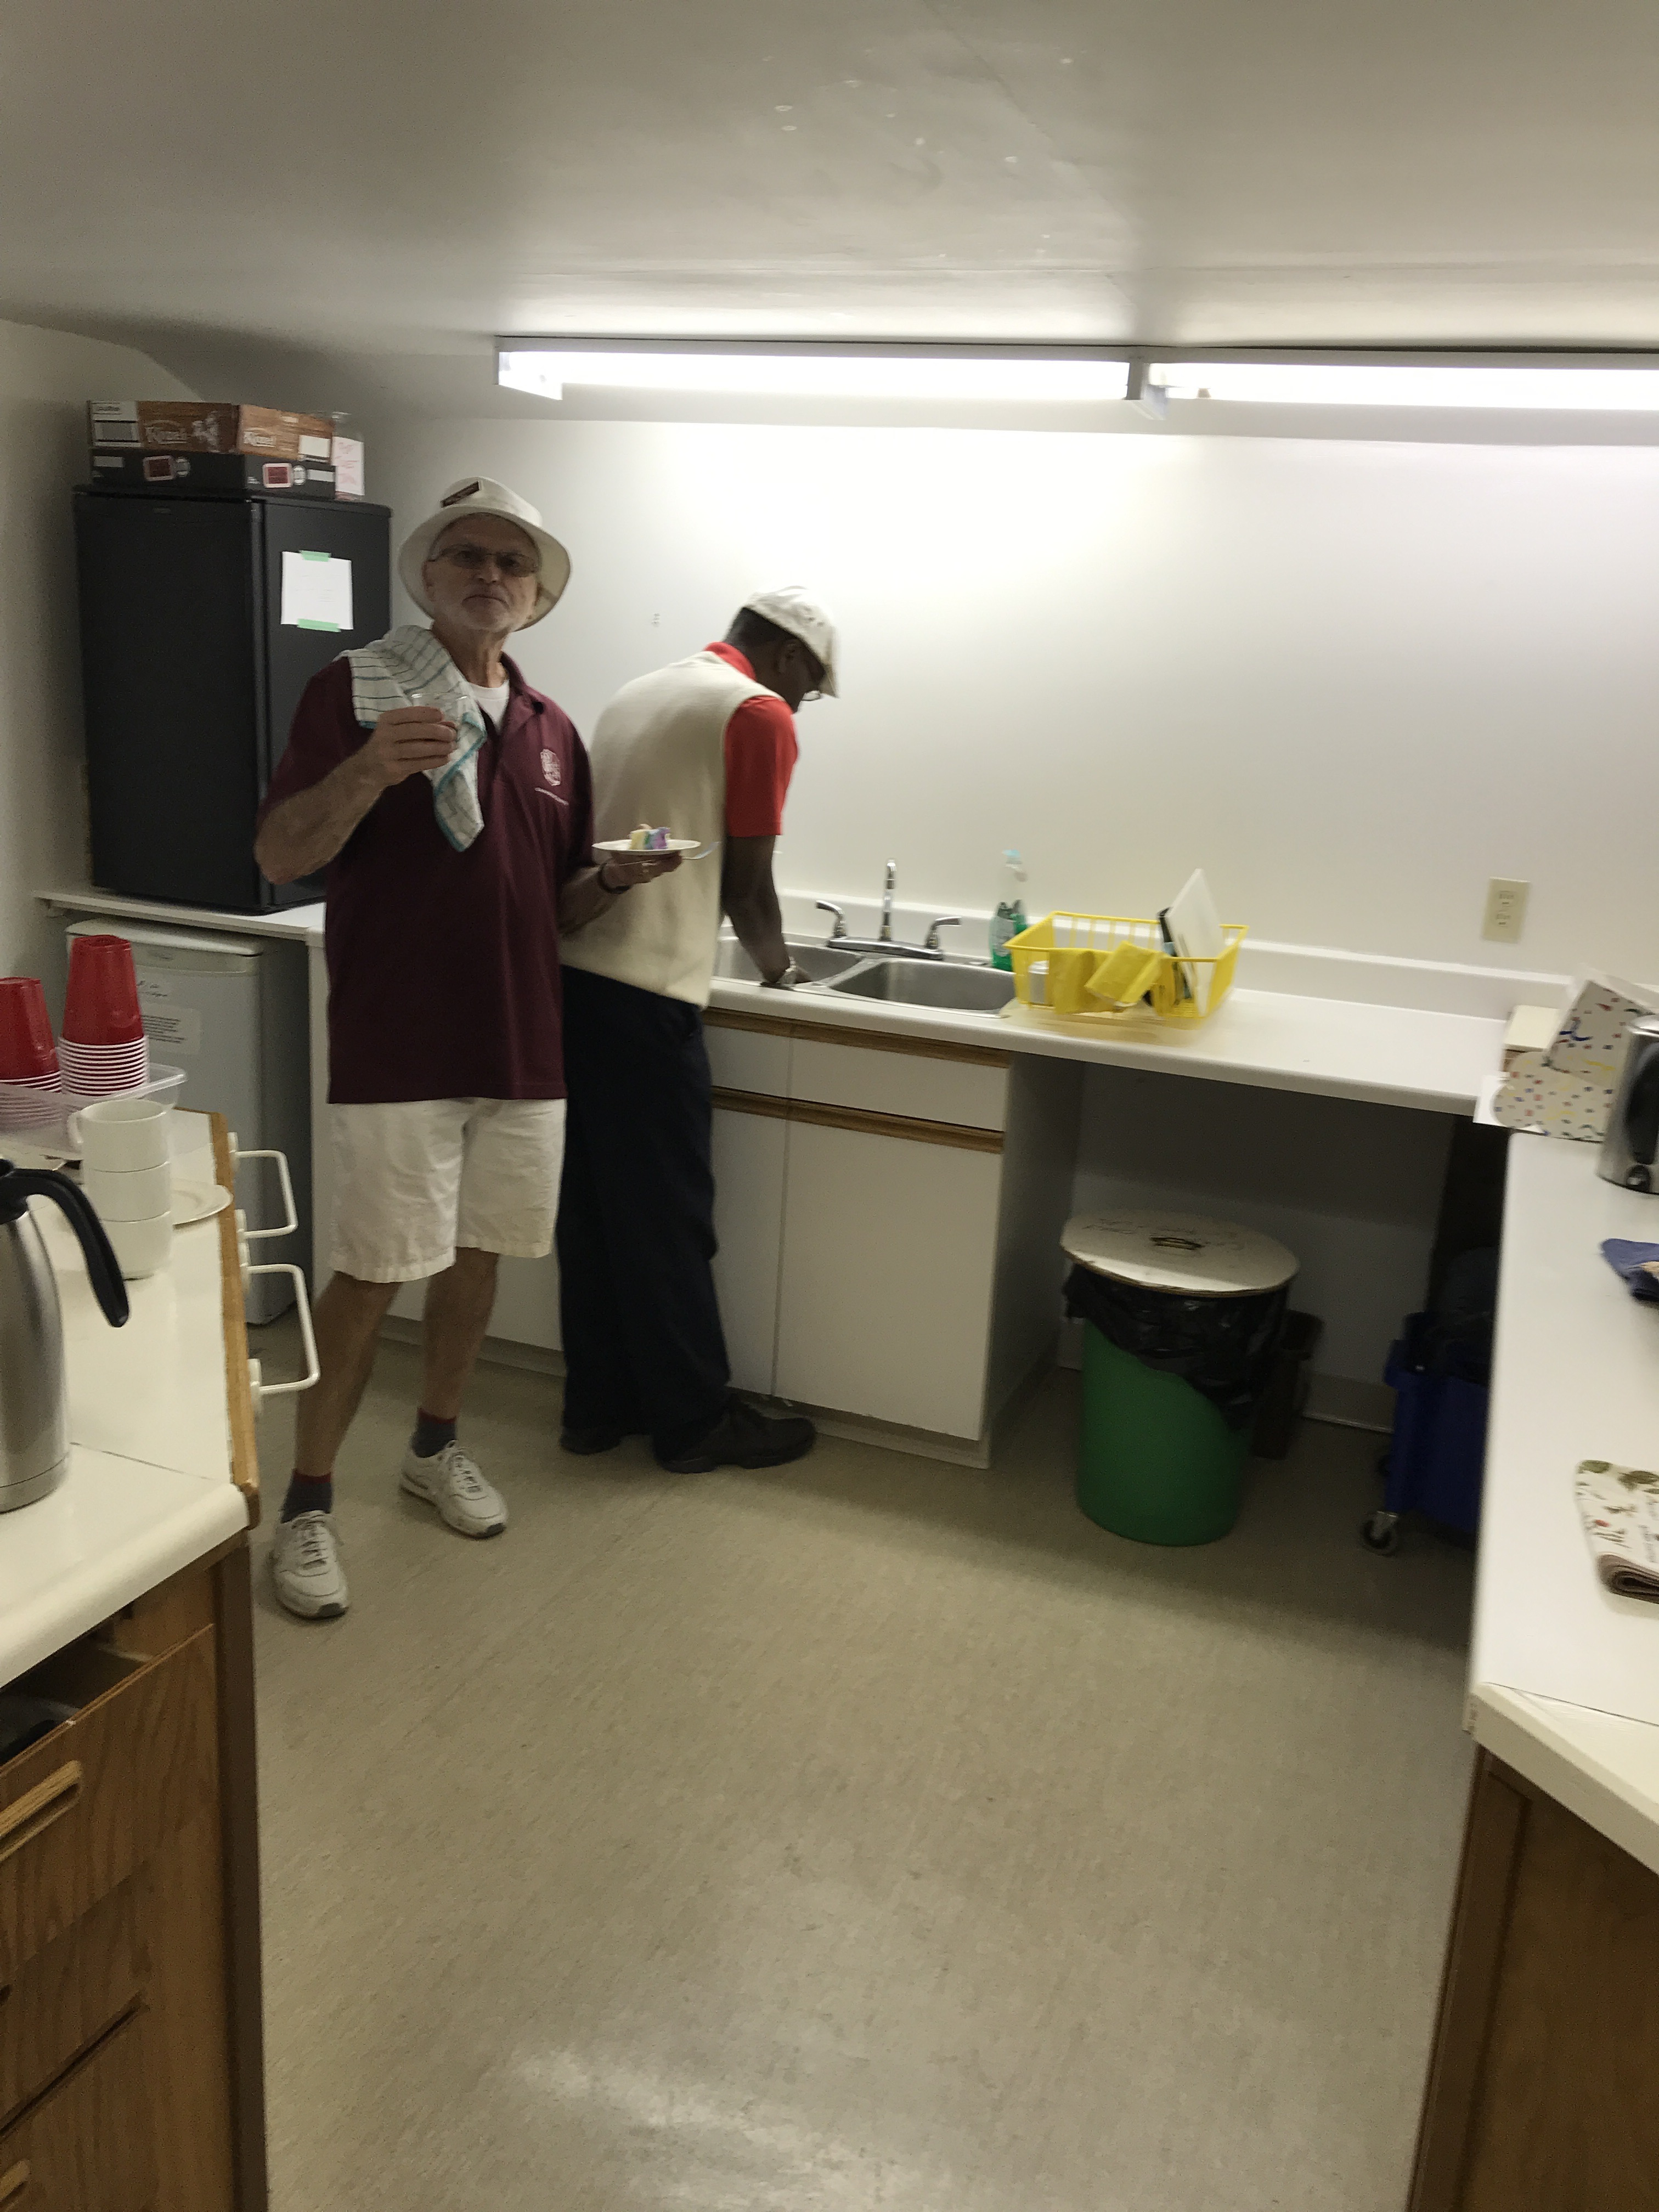 Only Men Kitchen workers!